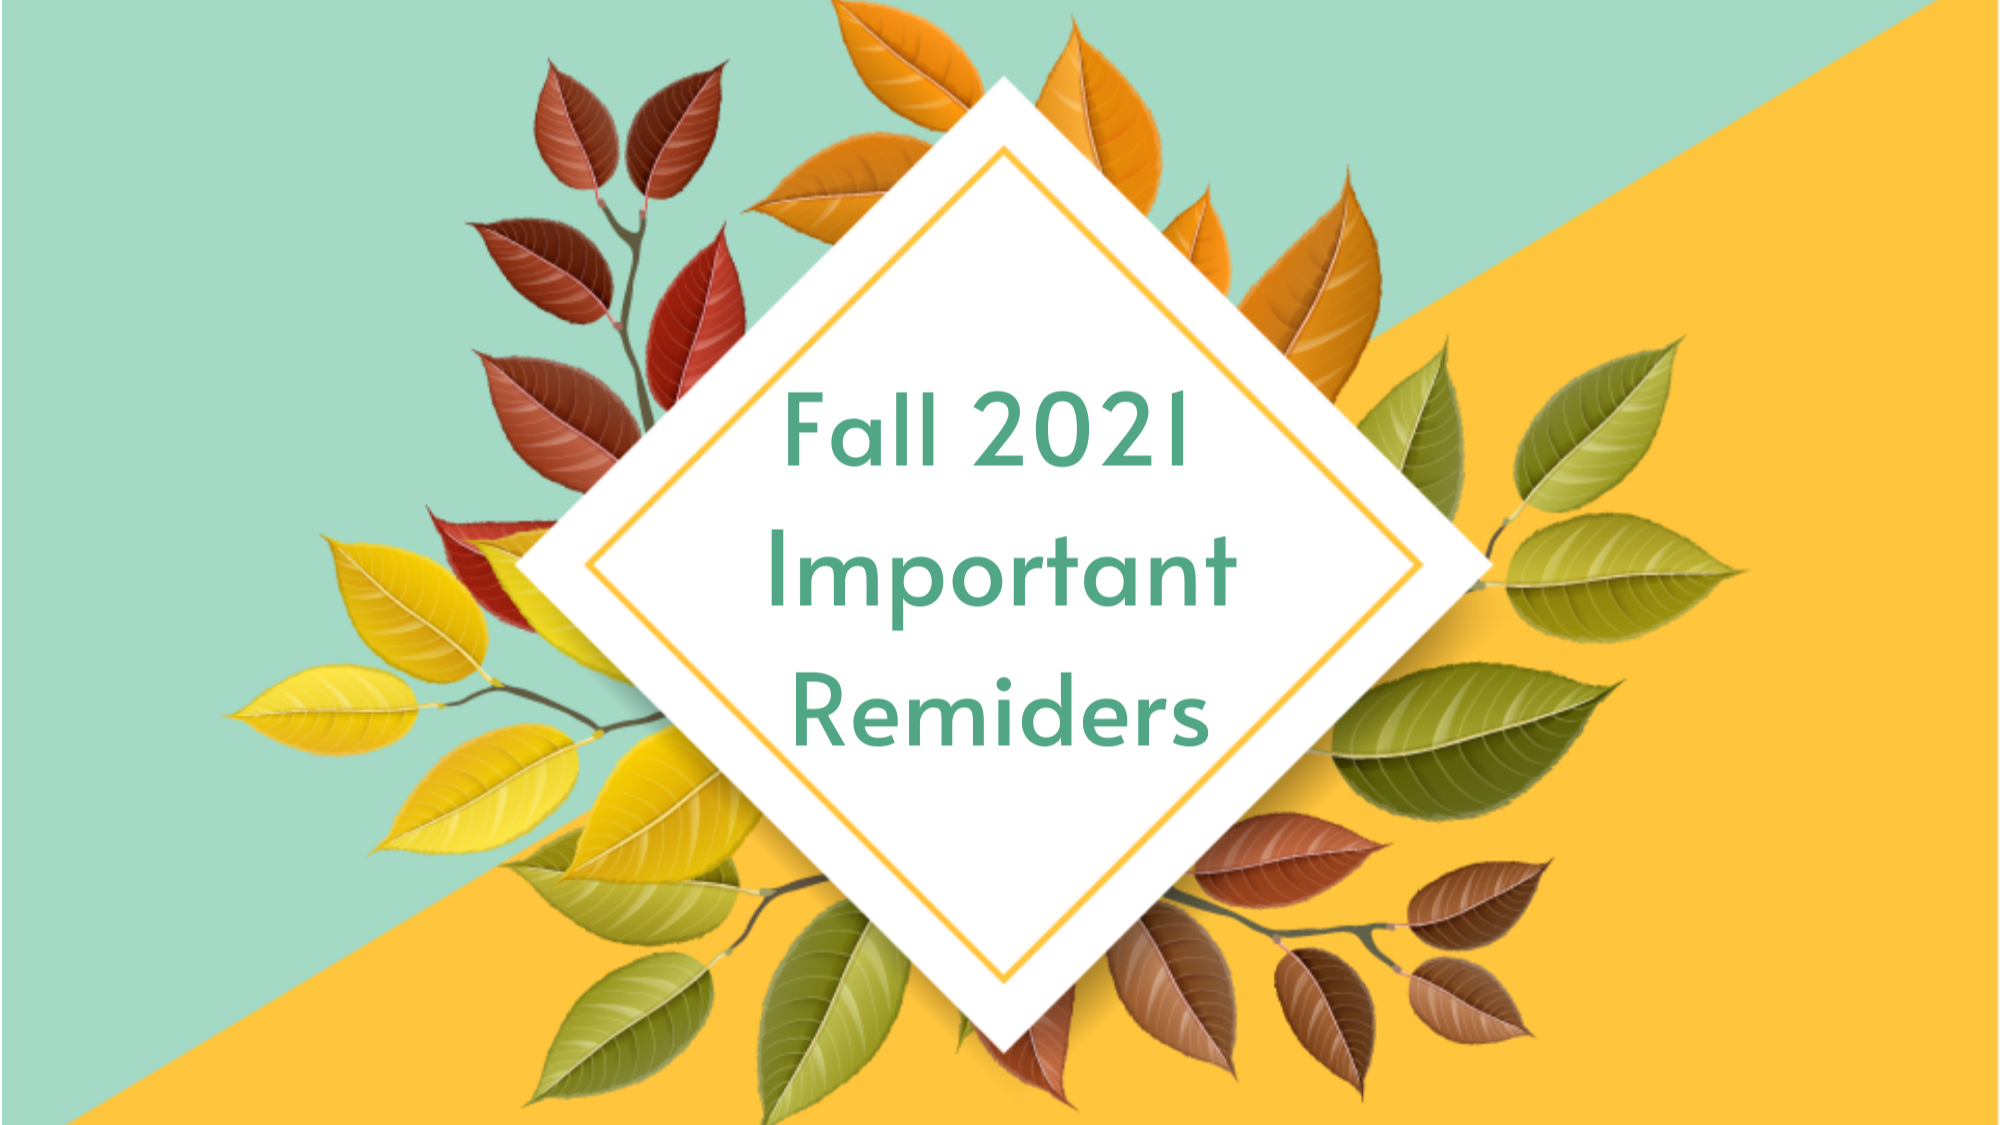 Fall 2021 Important Reminders